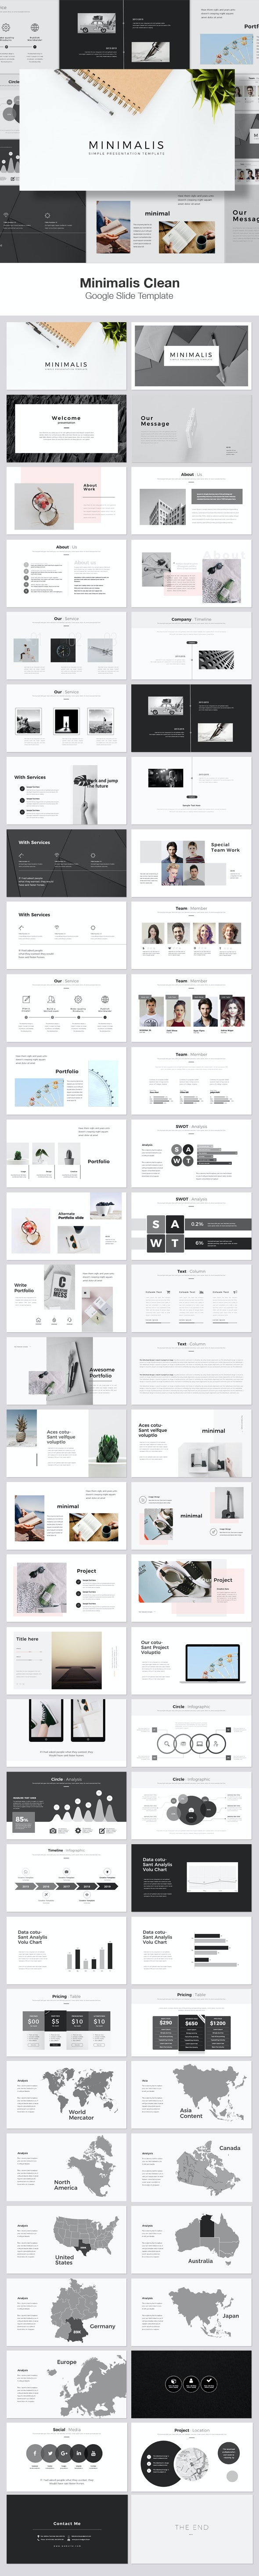 Minimalis Google Slide Template - Google Slides Presentation Templates